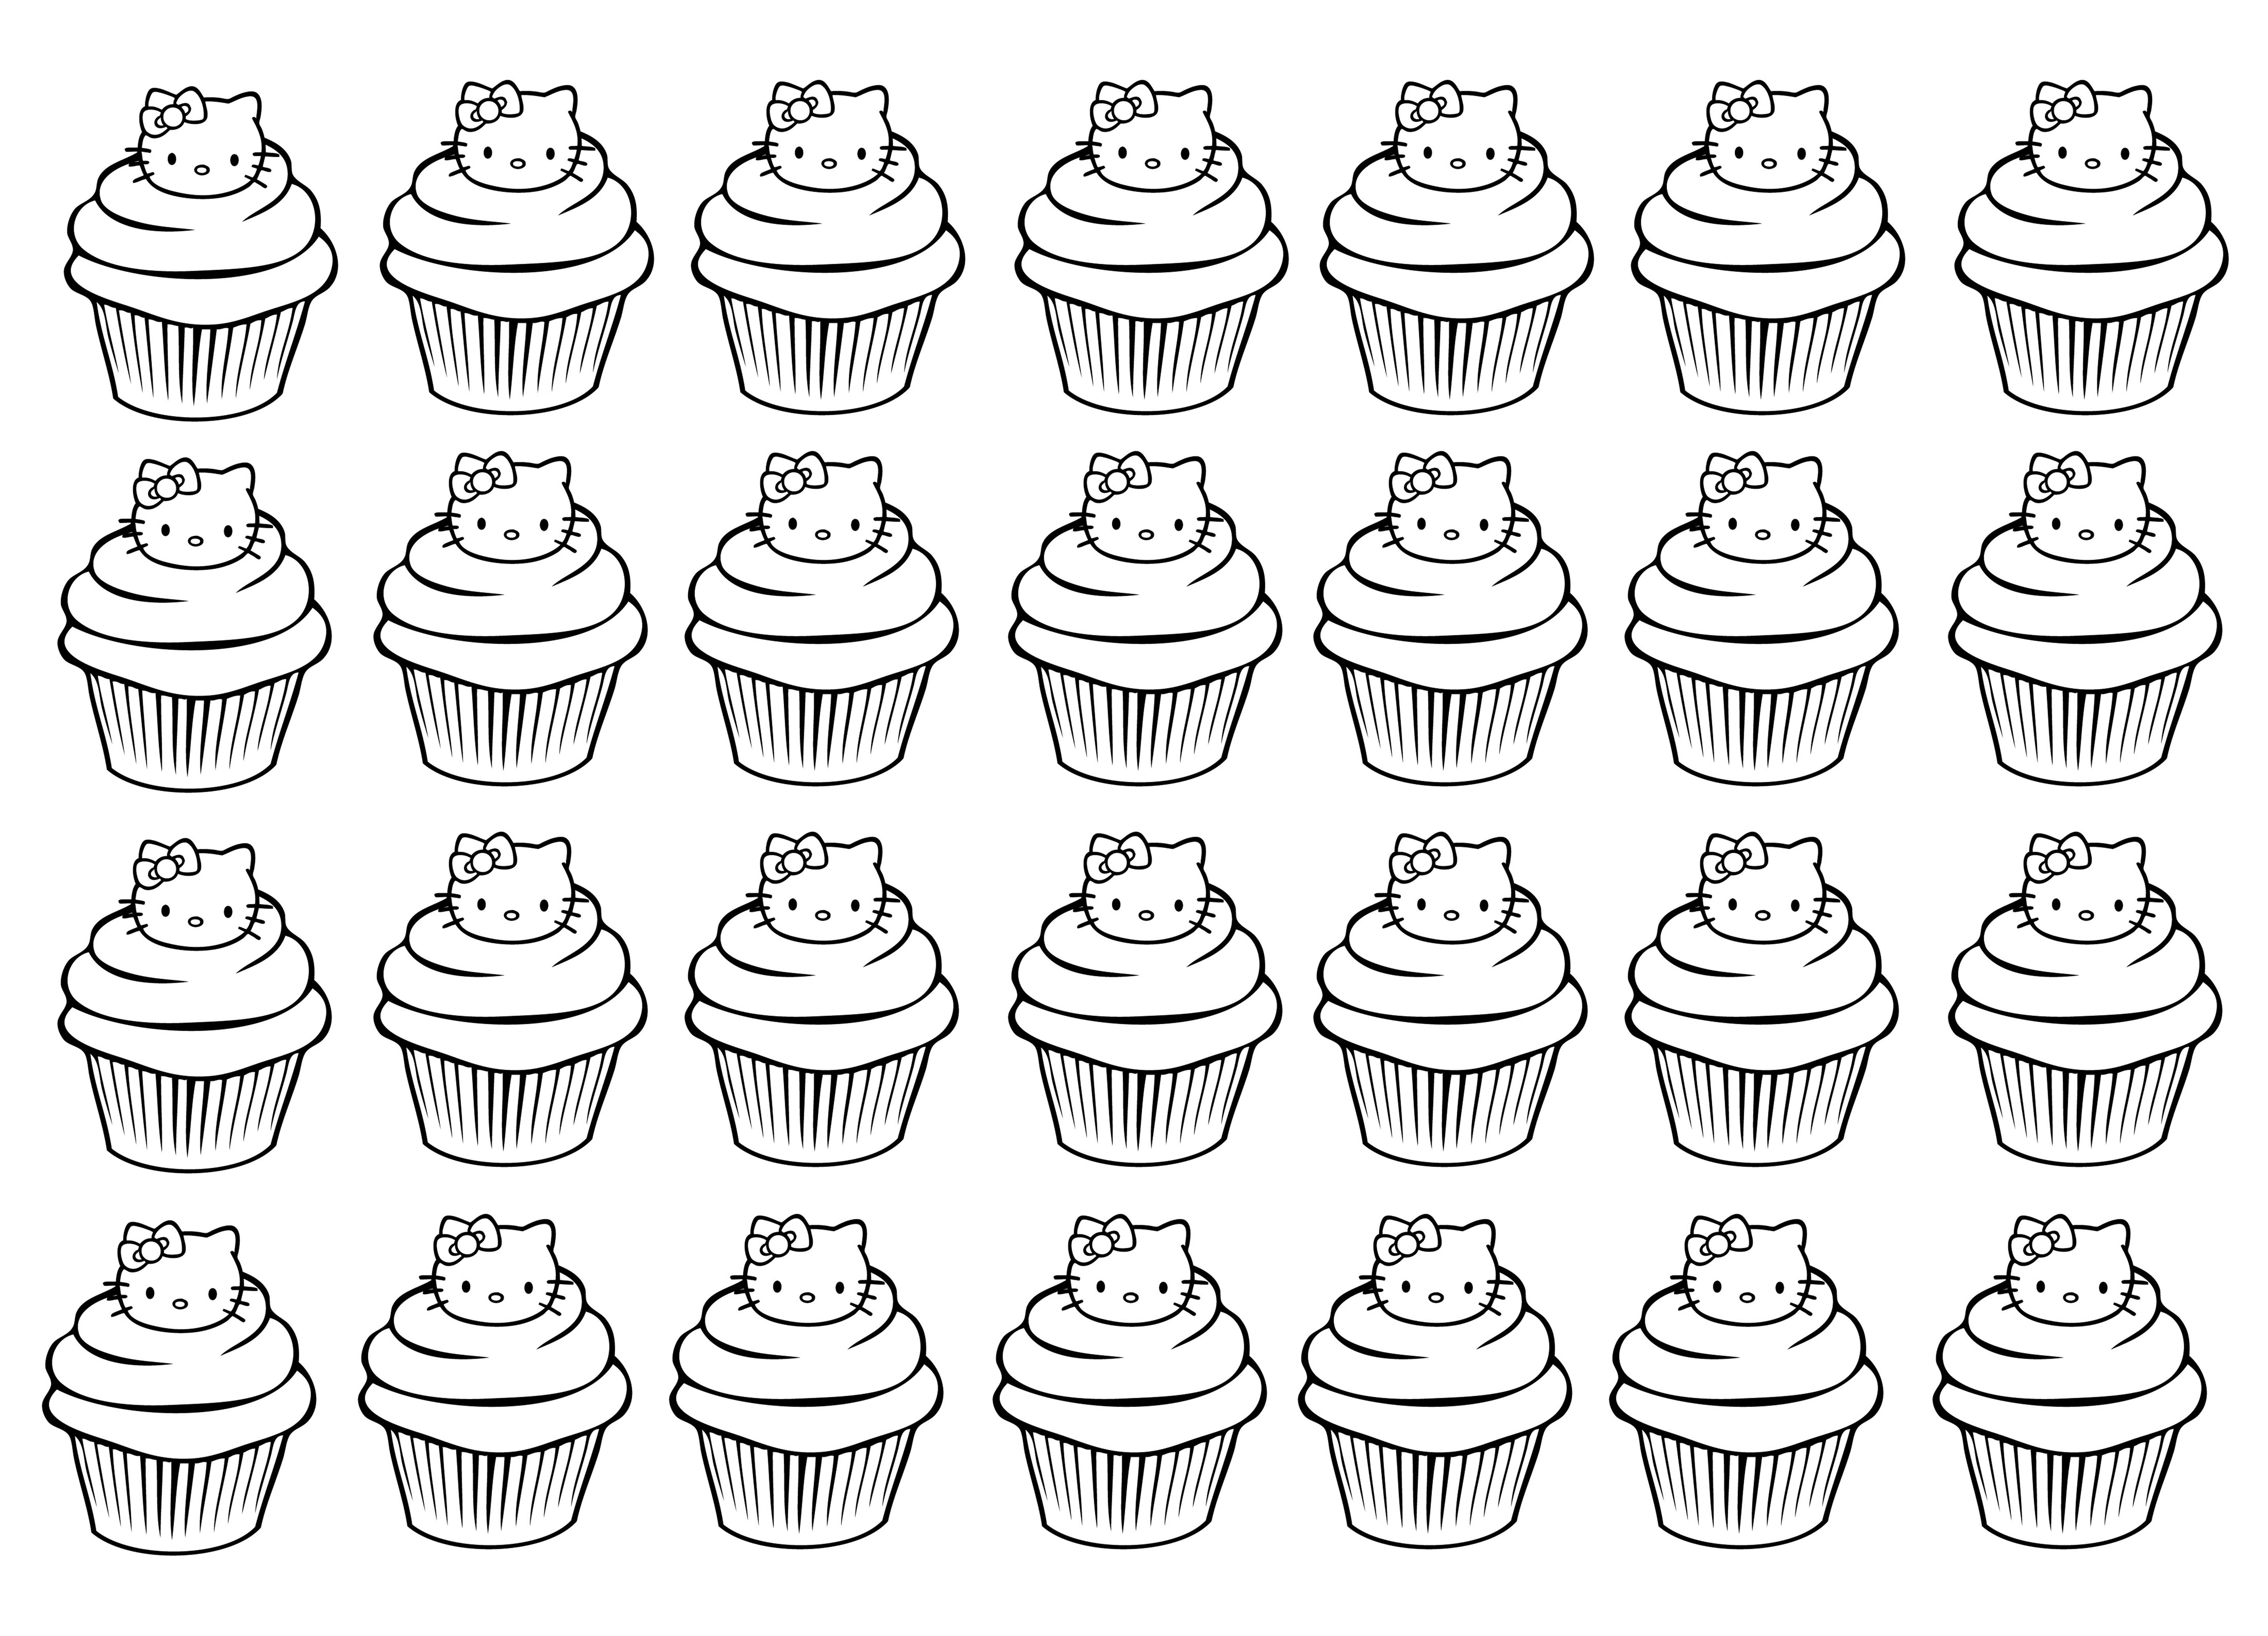 Cupcakes hello kitty complexe cupcakes et g teaux coloriages difficiles pour adultes - Colorier kitty ...